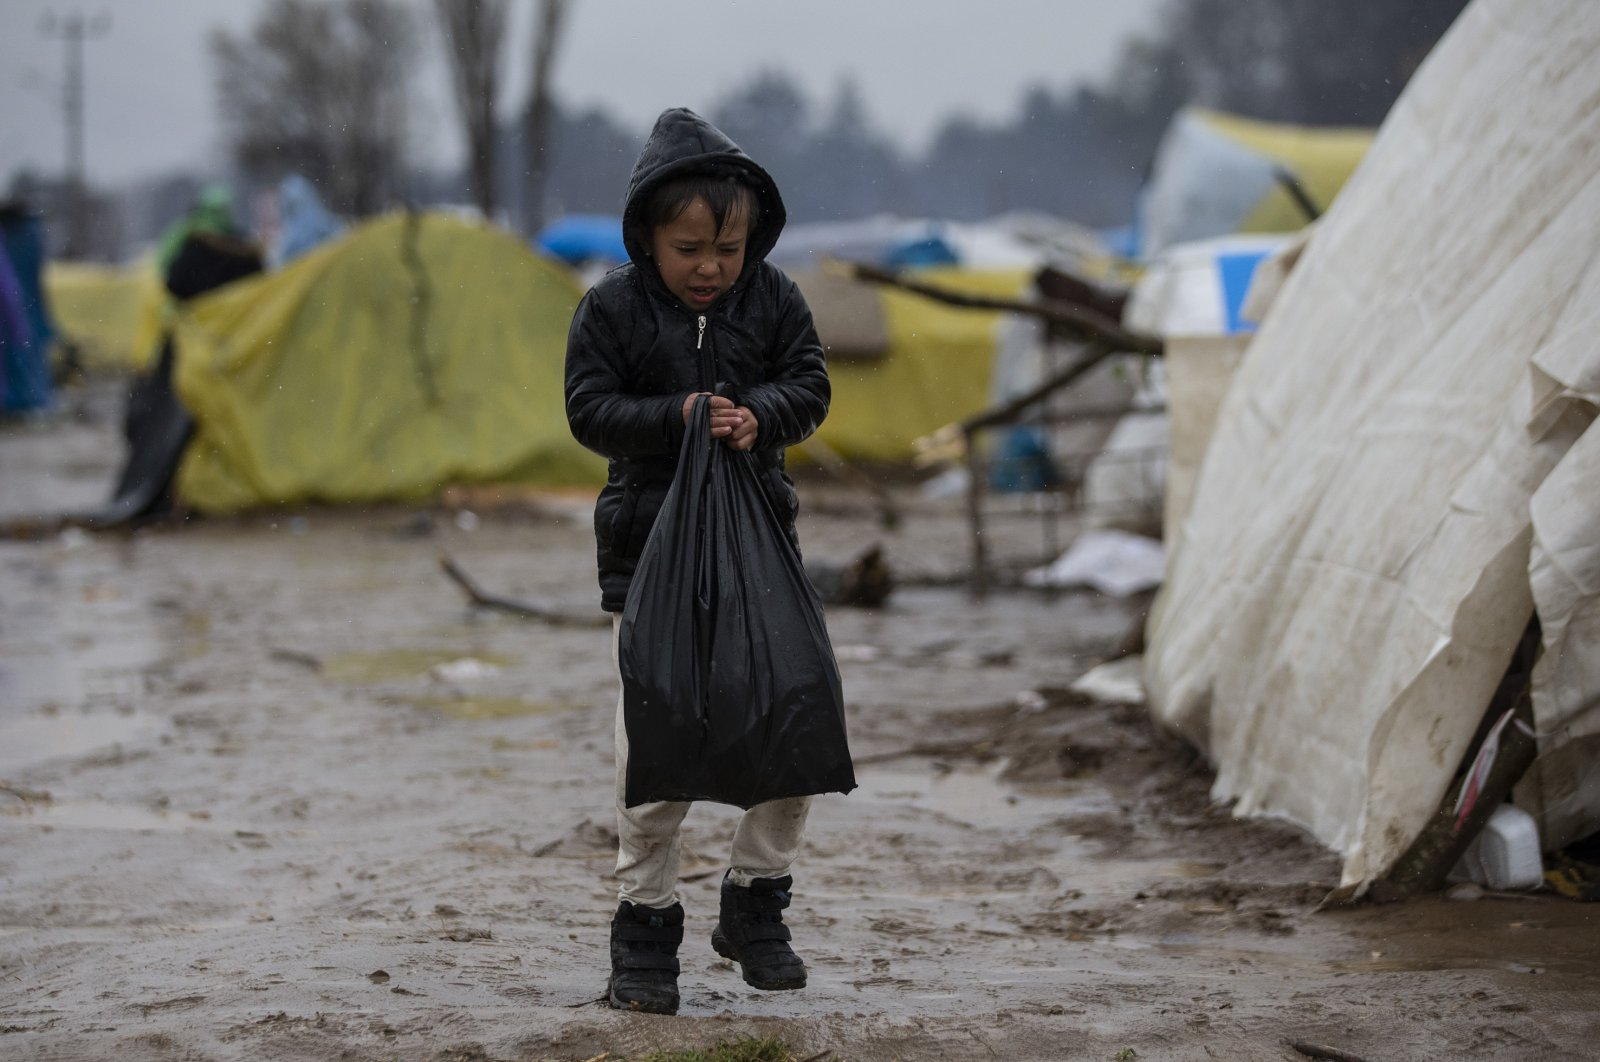 Refugees continue to wait to be taken in by Europe at the Turkish-Greek border on their 18th day despite harsh weather conditions, March 15, 2020. (AA Photo)